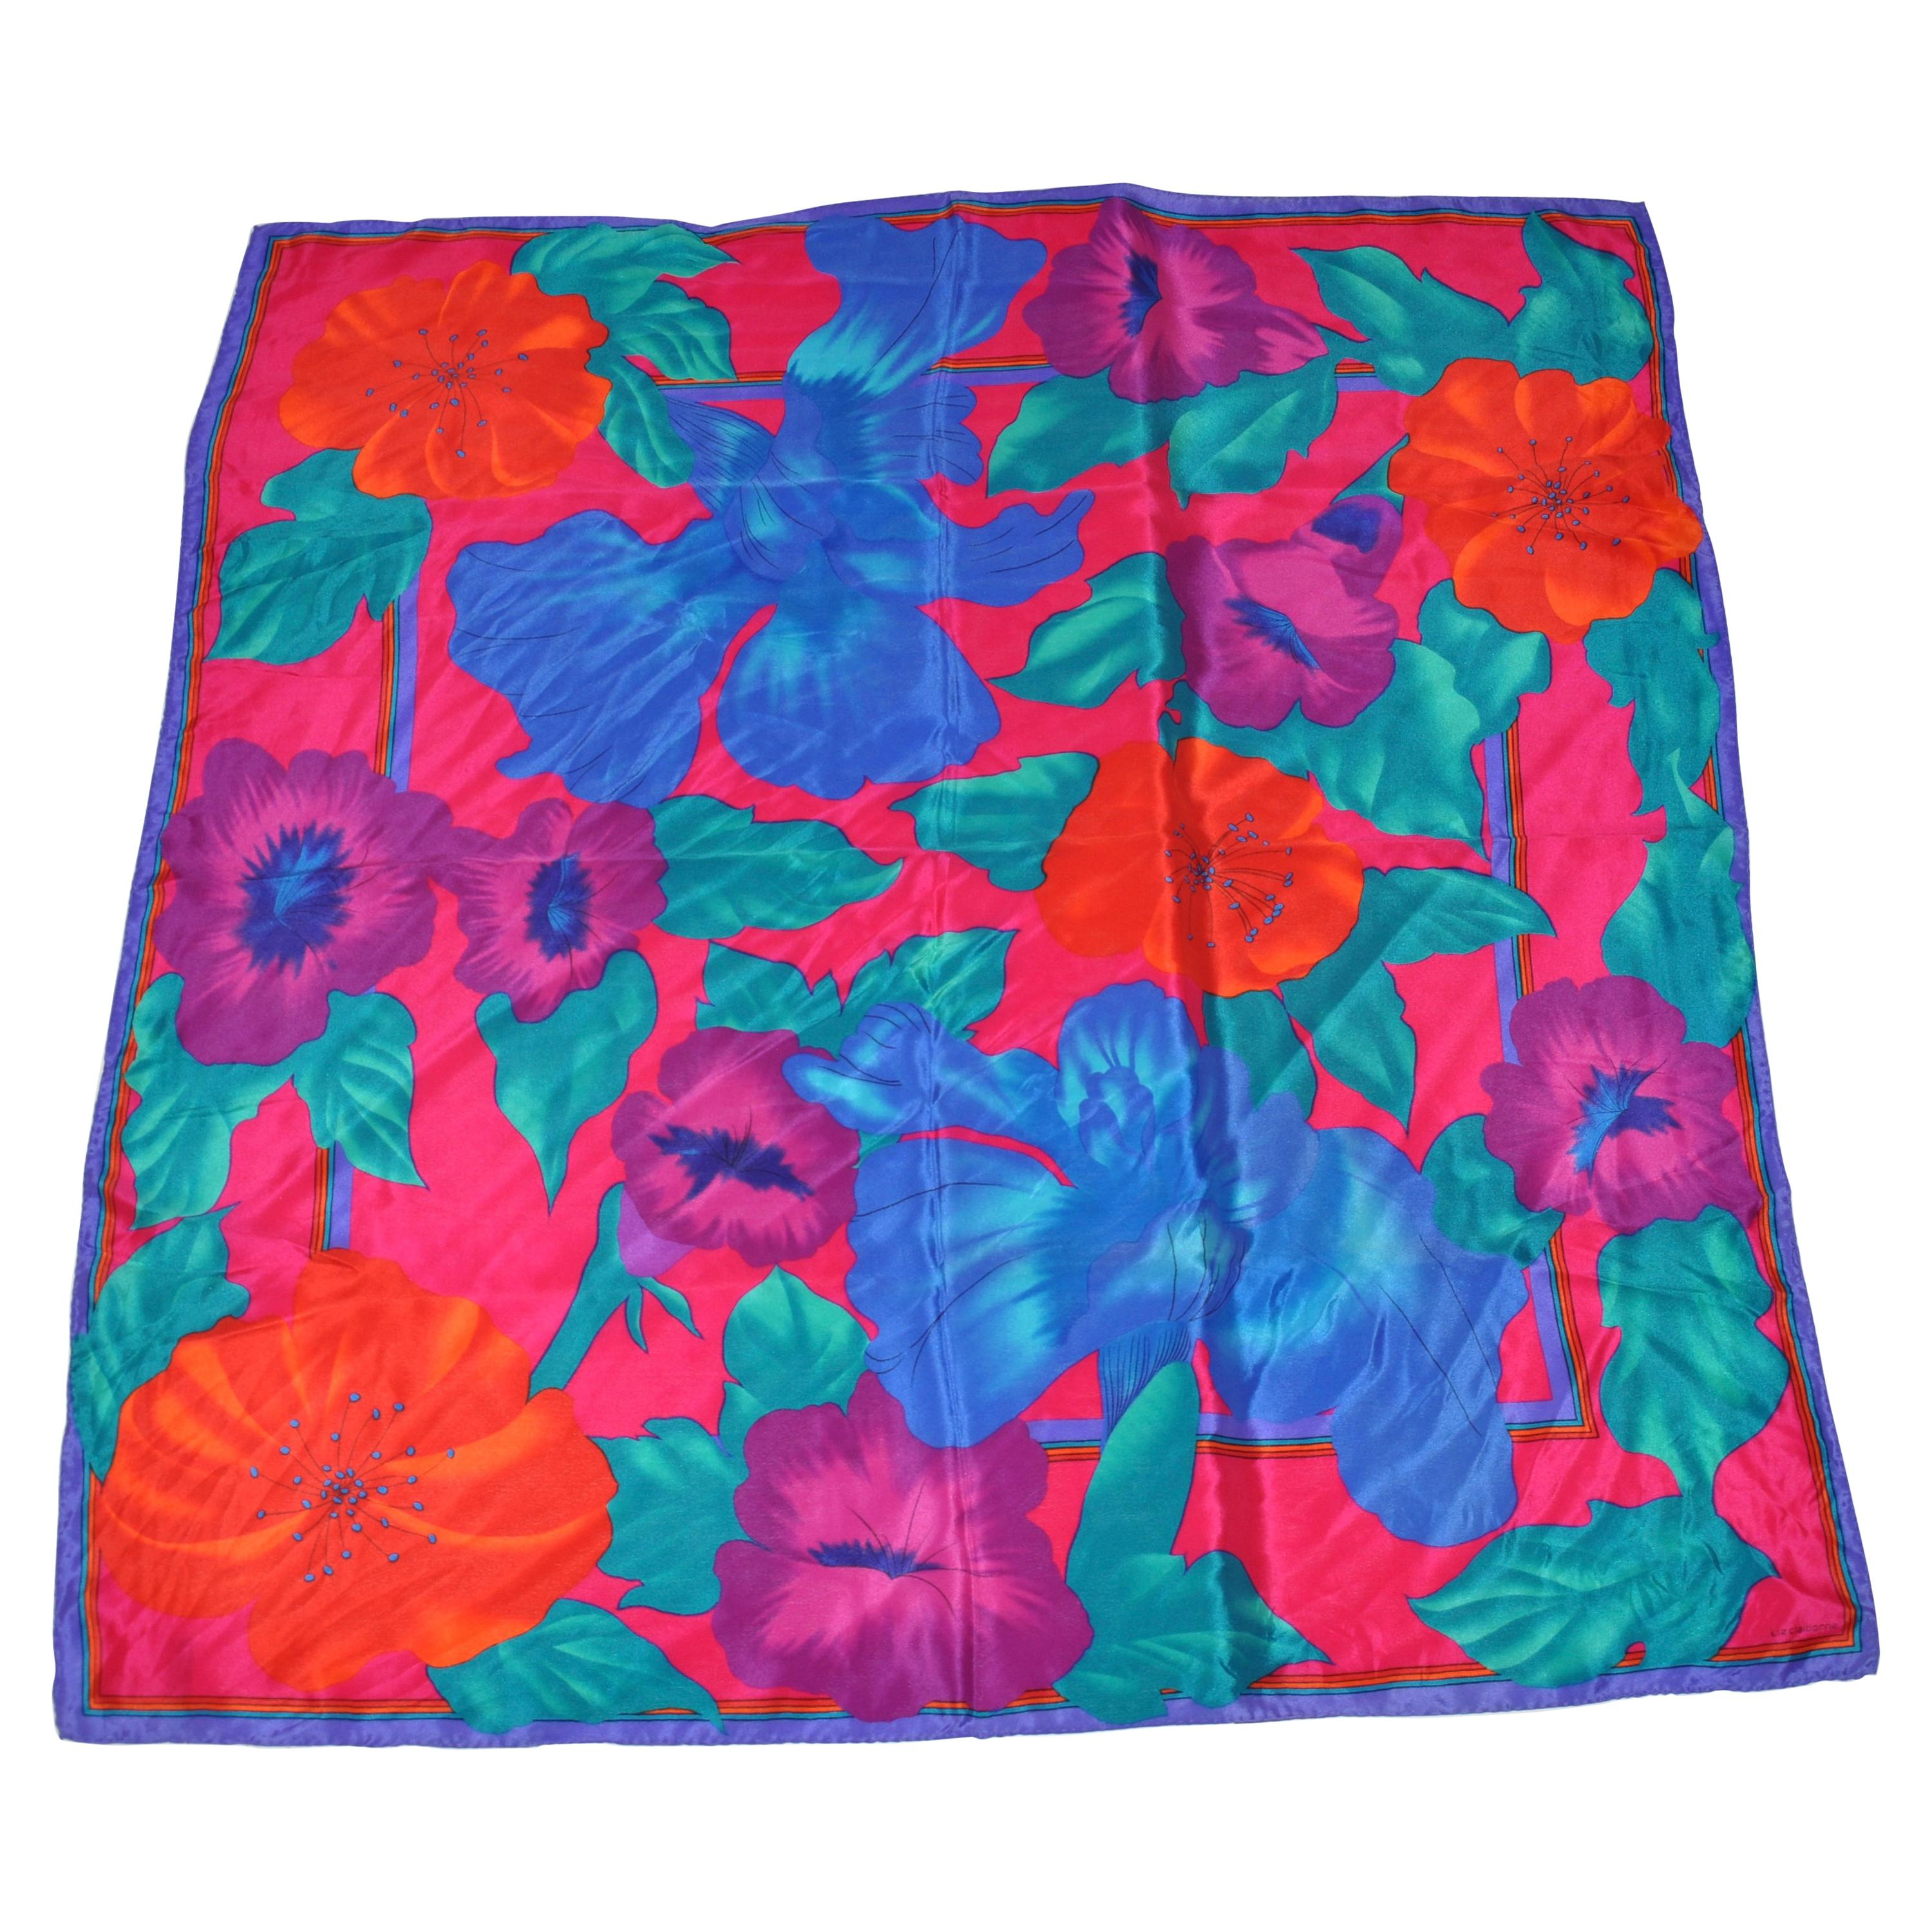 Vivid Poppies & Orchids With Violet Borders Silk Scarf